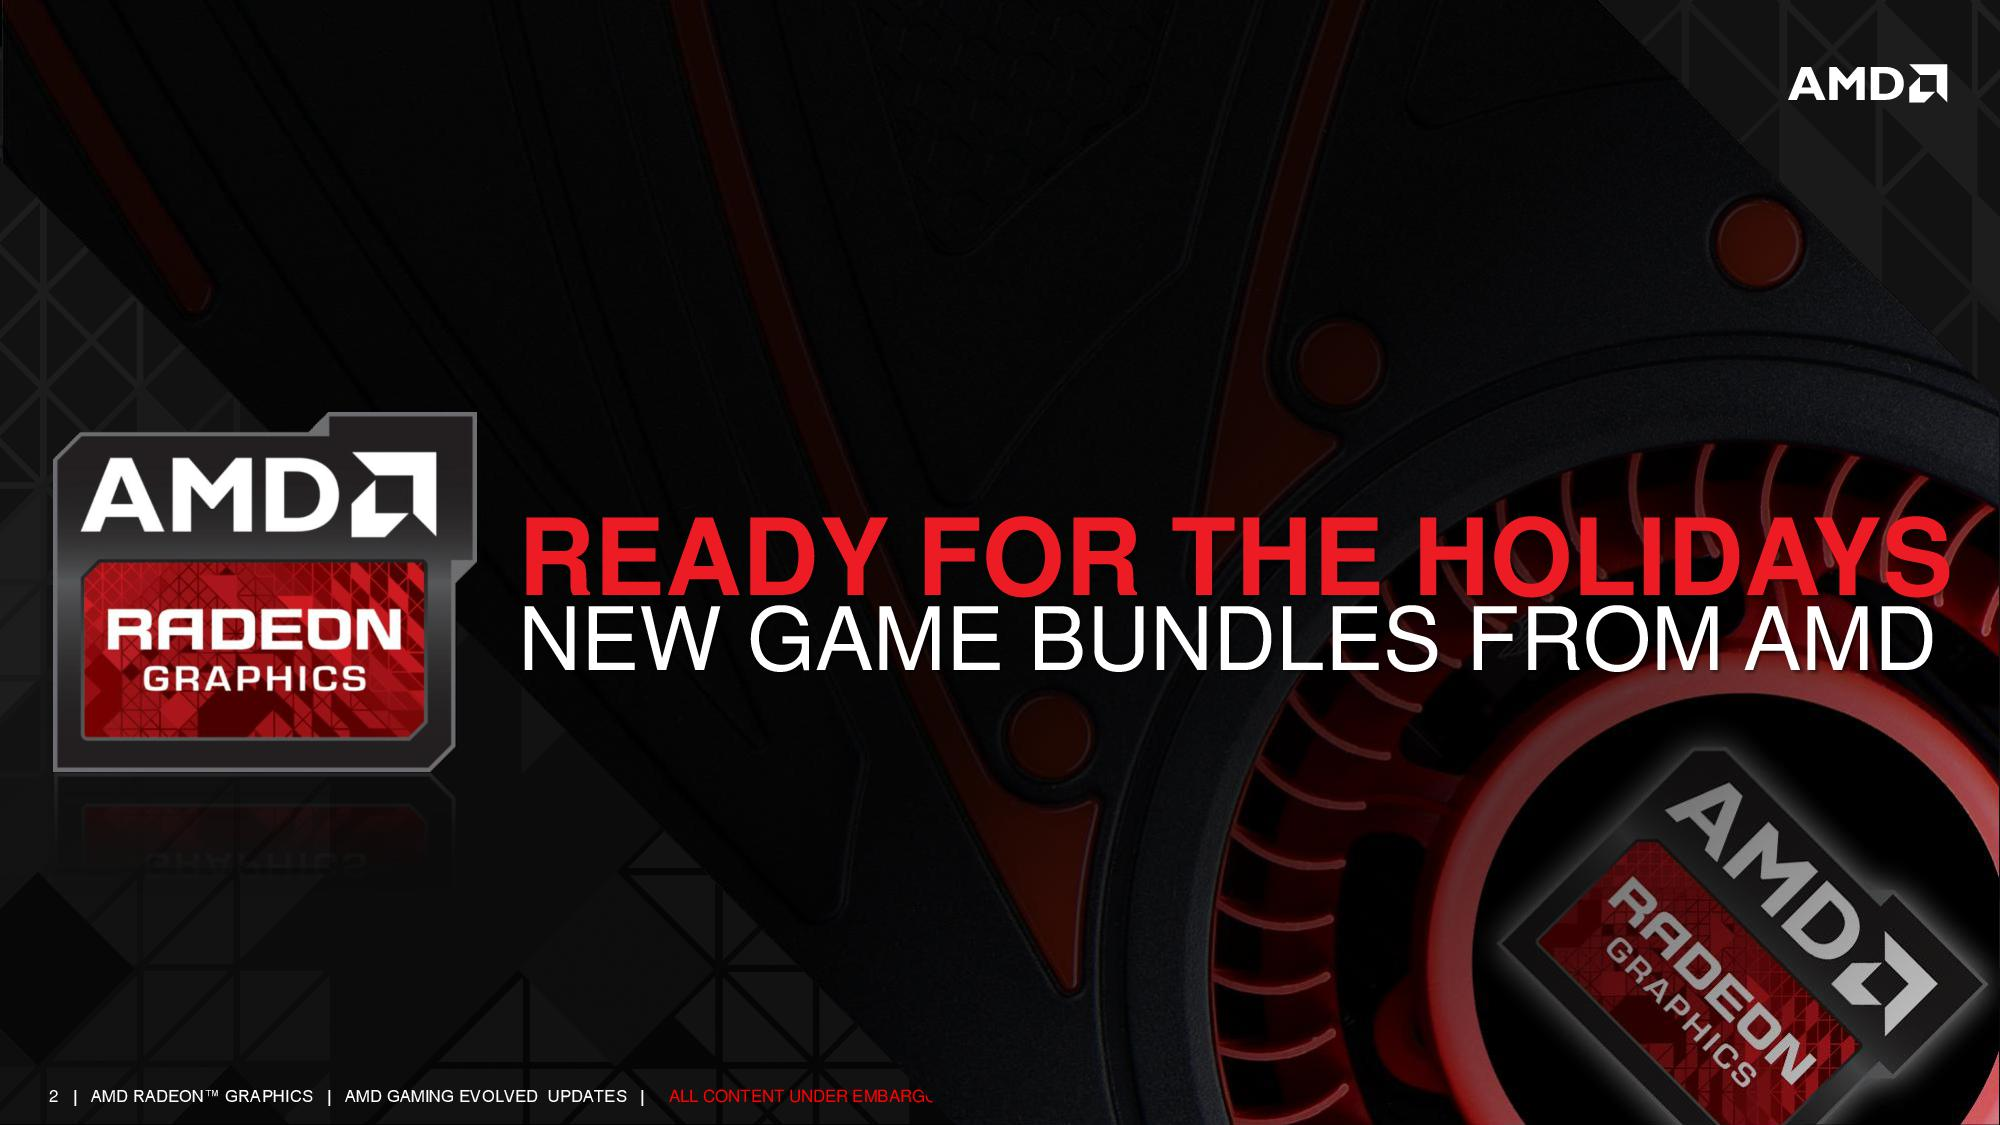 4Q13 AMD Radeon Game Bundles FINAL-002